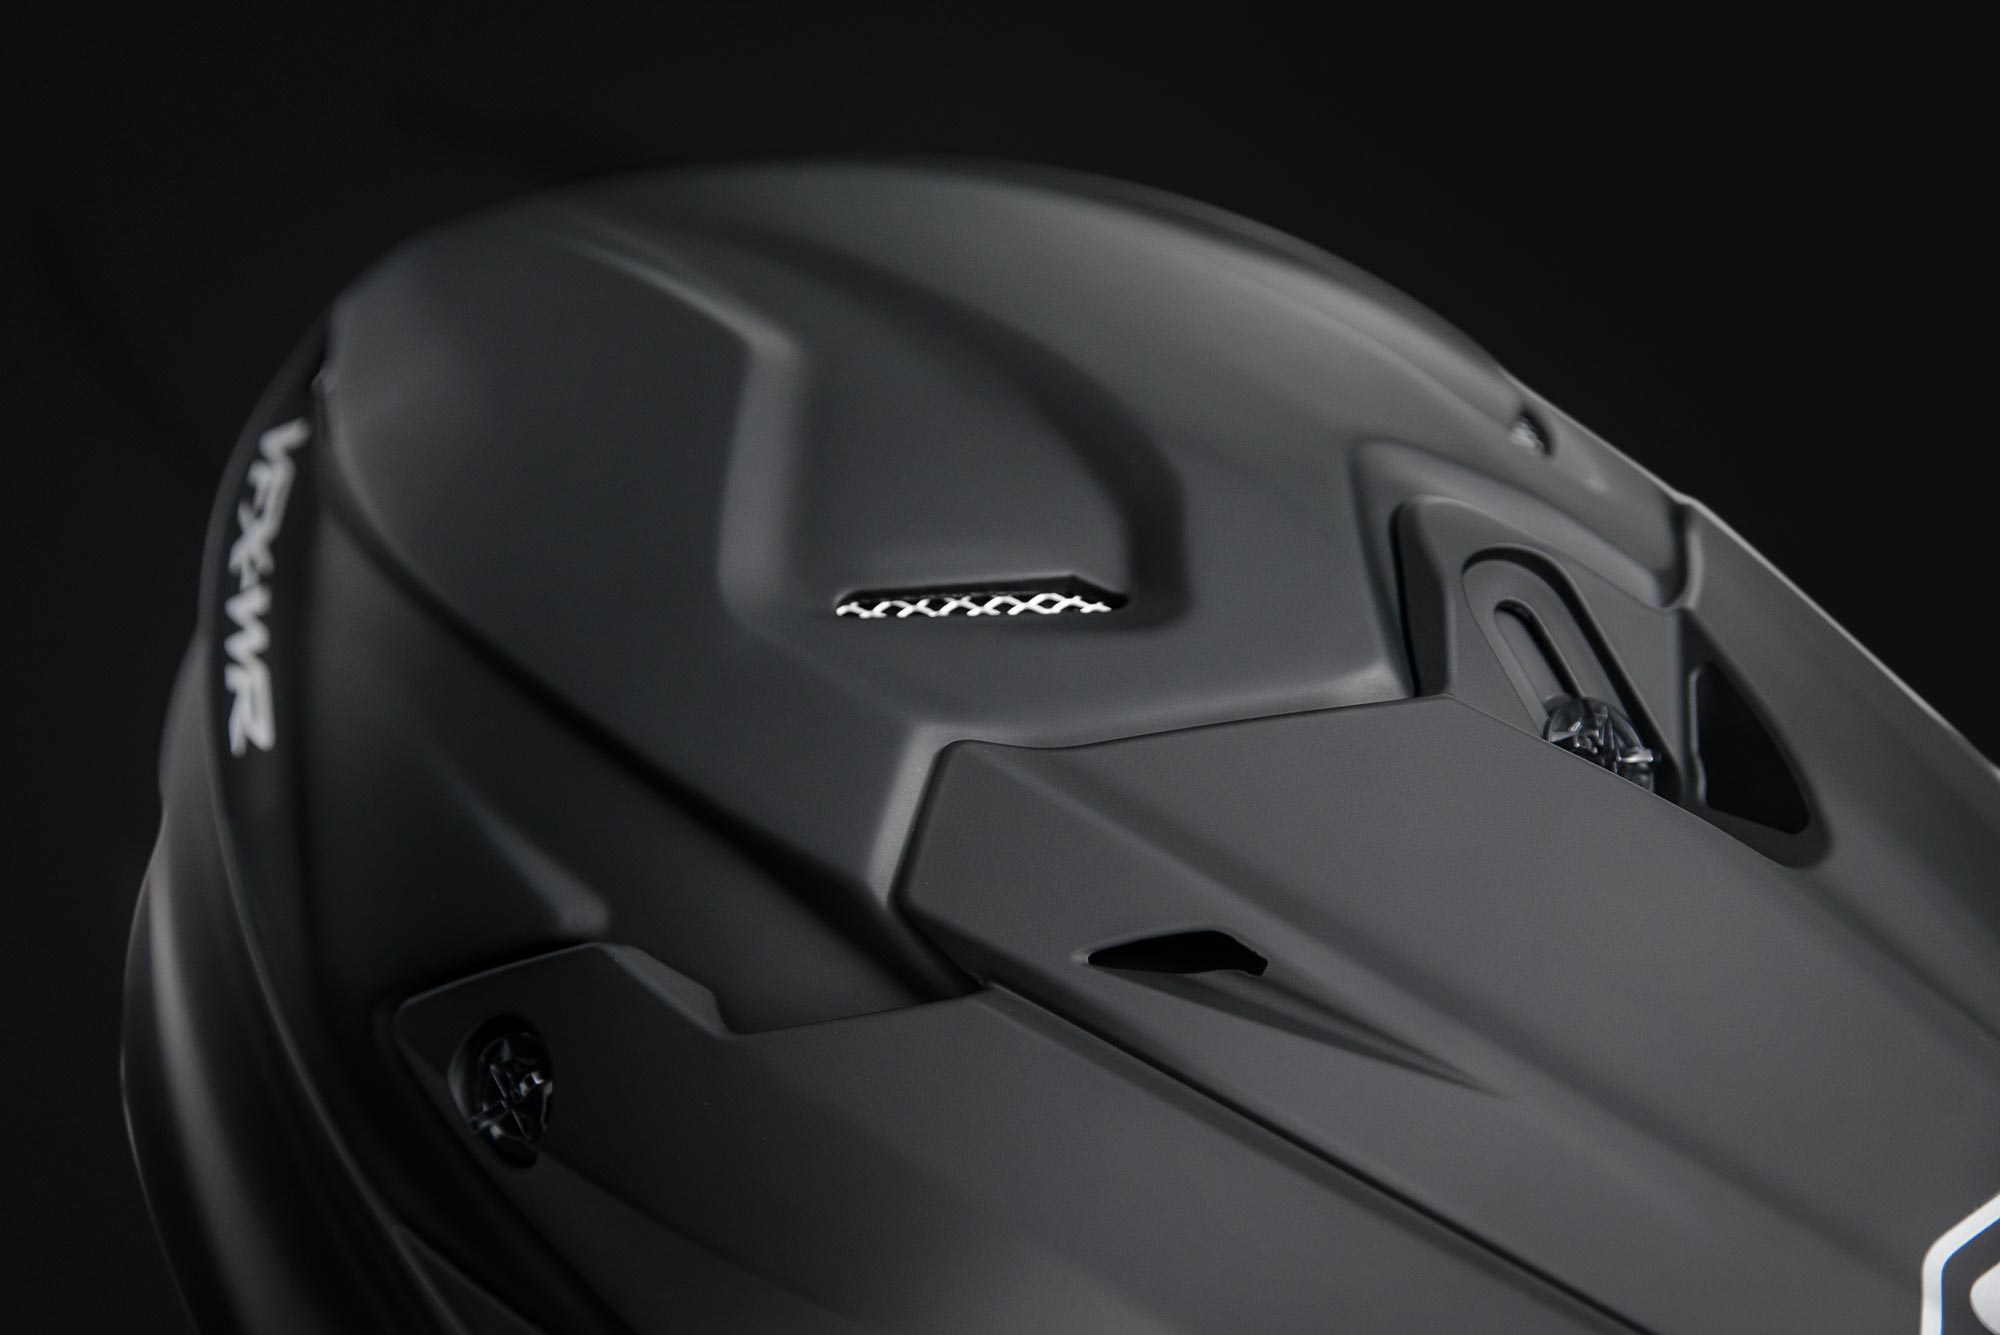 shoei_vfx-wr_detail-big